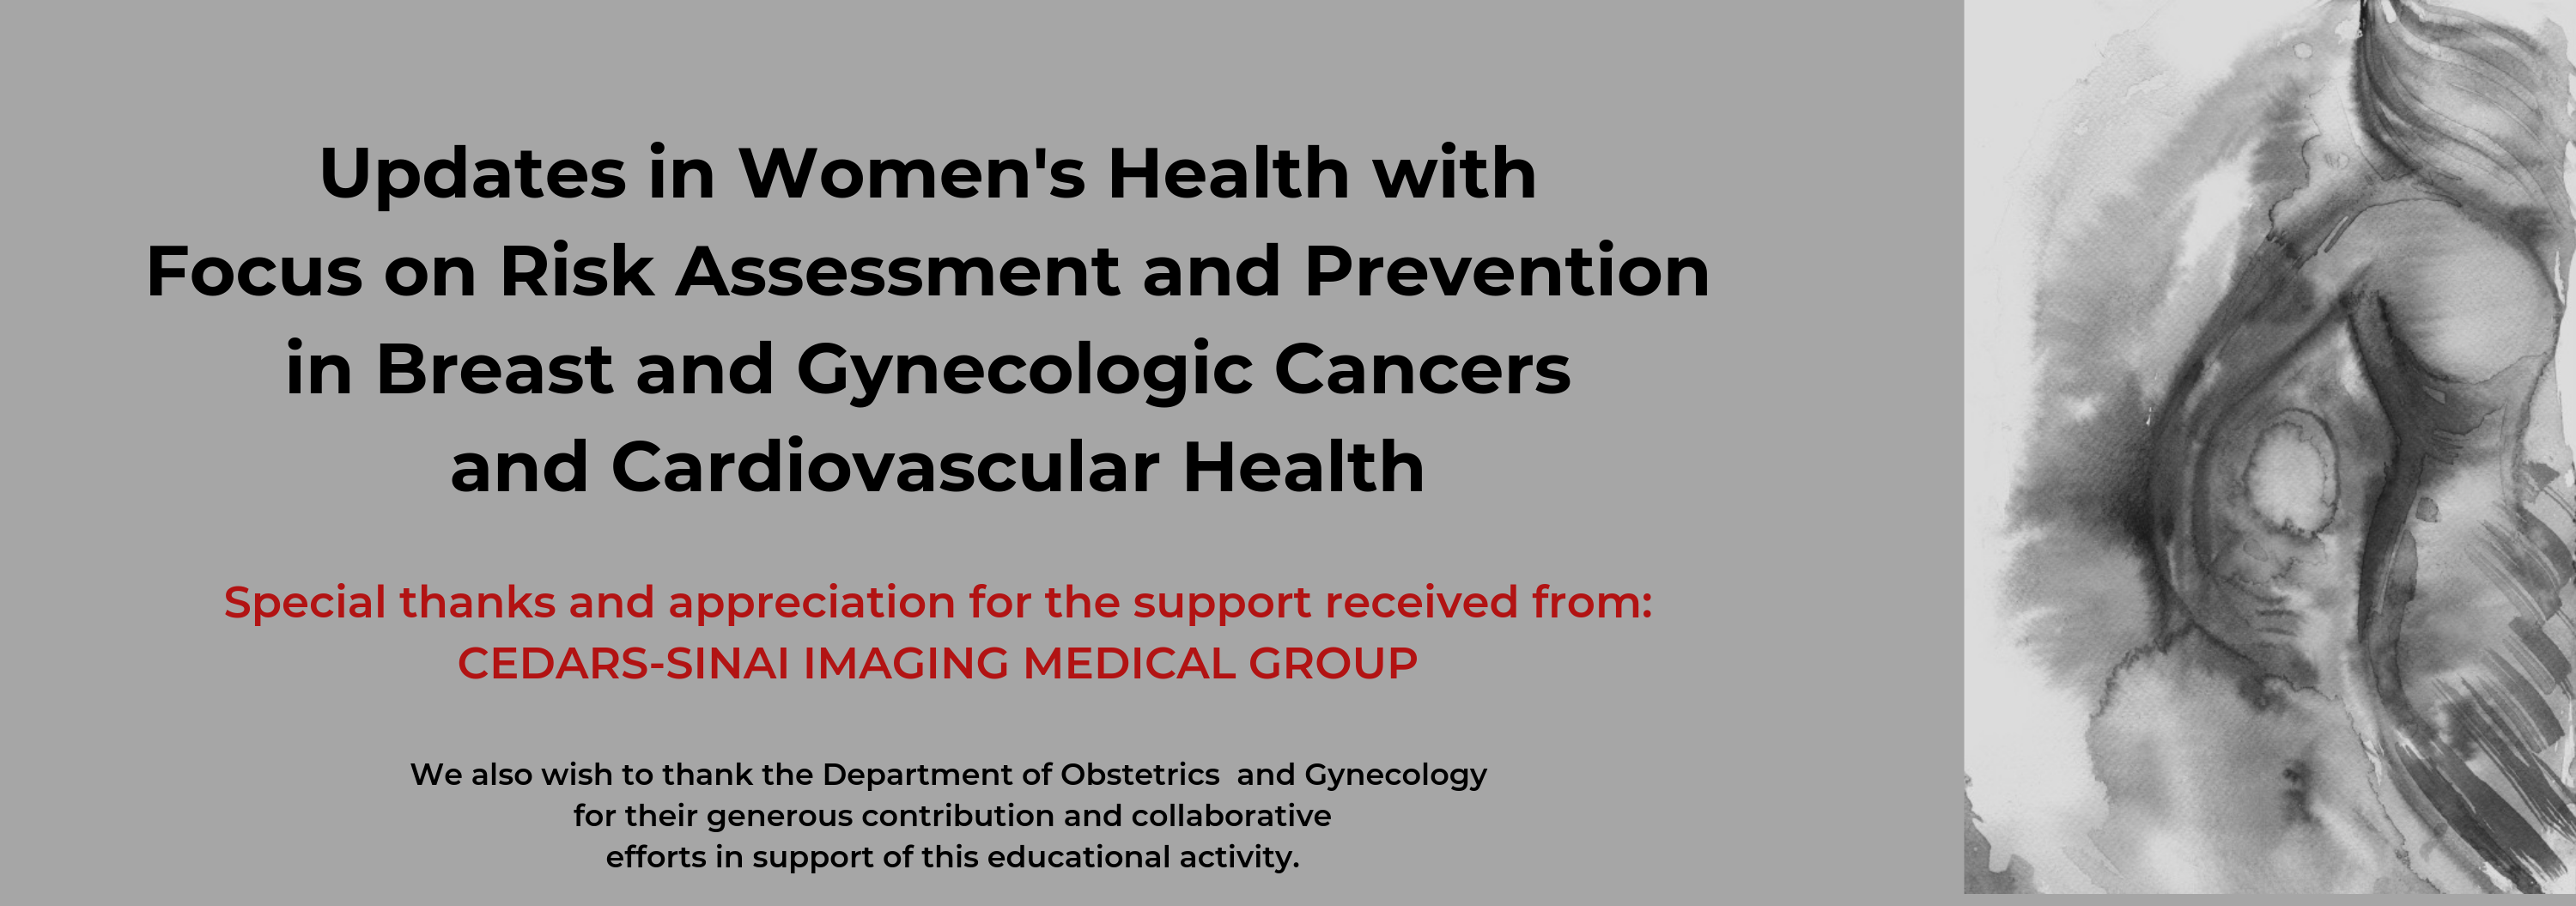 Updates in Women's Health with Focus on Risk Assessment and Prevention in Breast and Gynecologic Cancers and Cardiovascular Health Banner